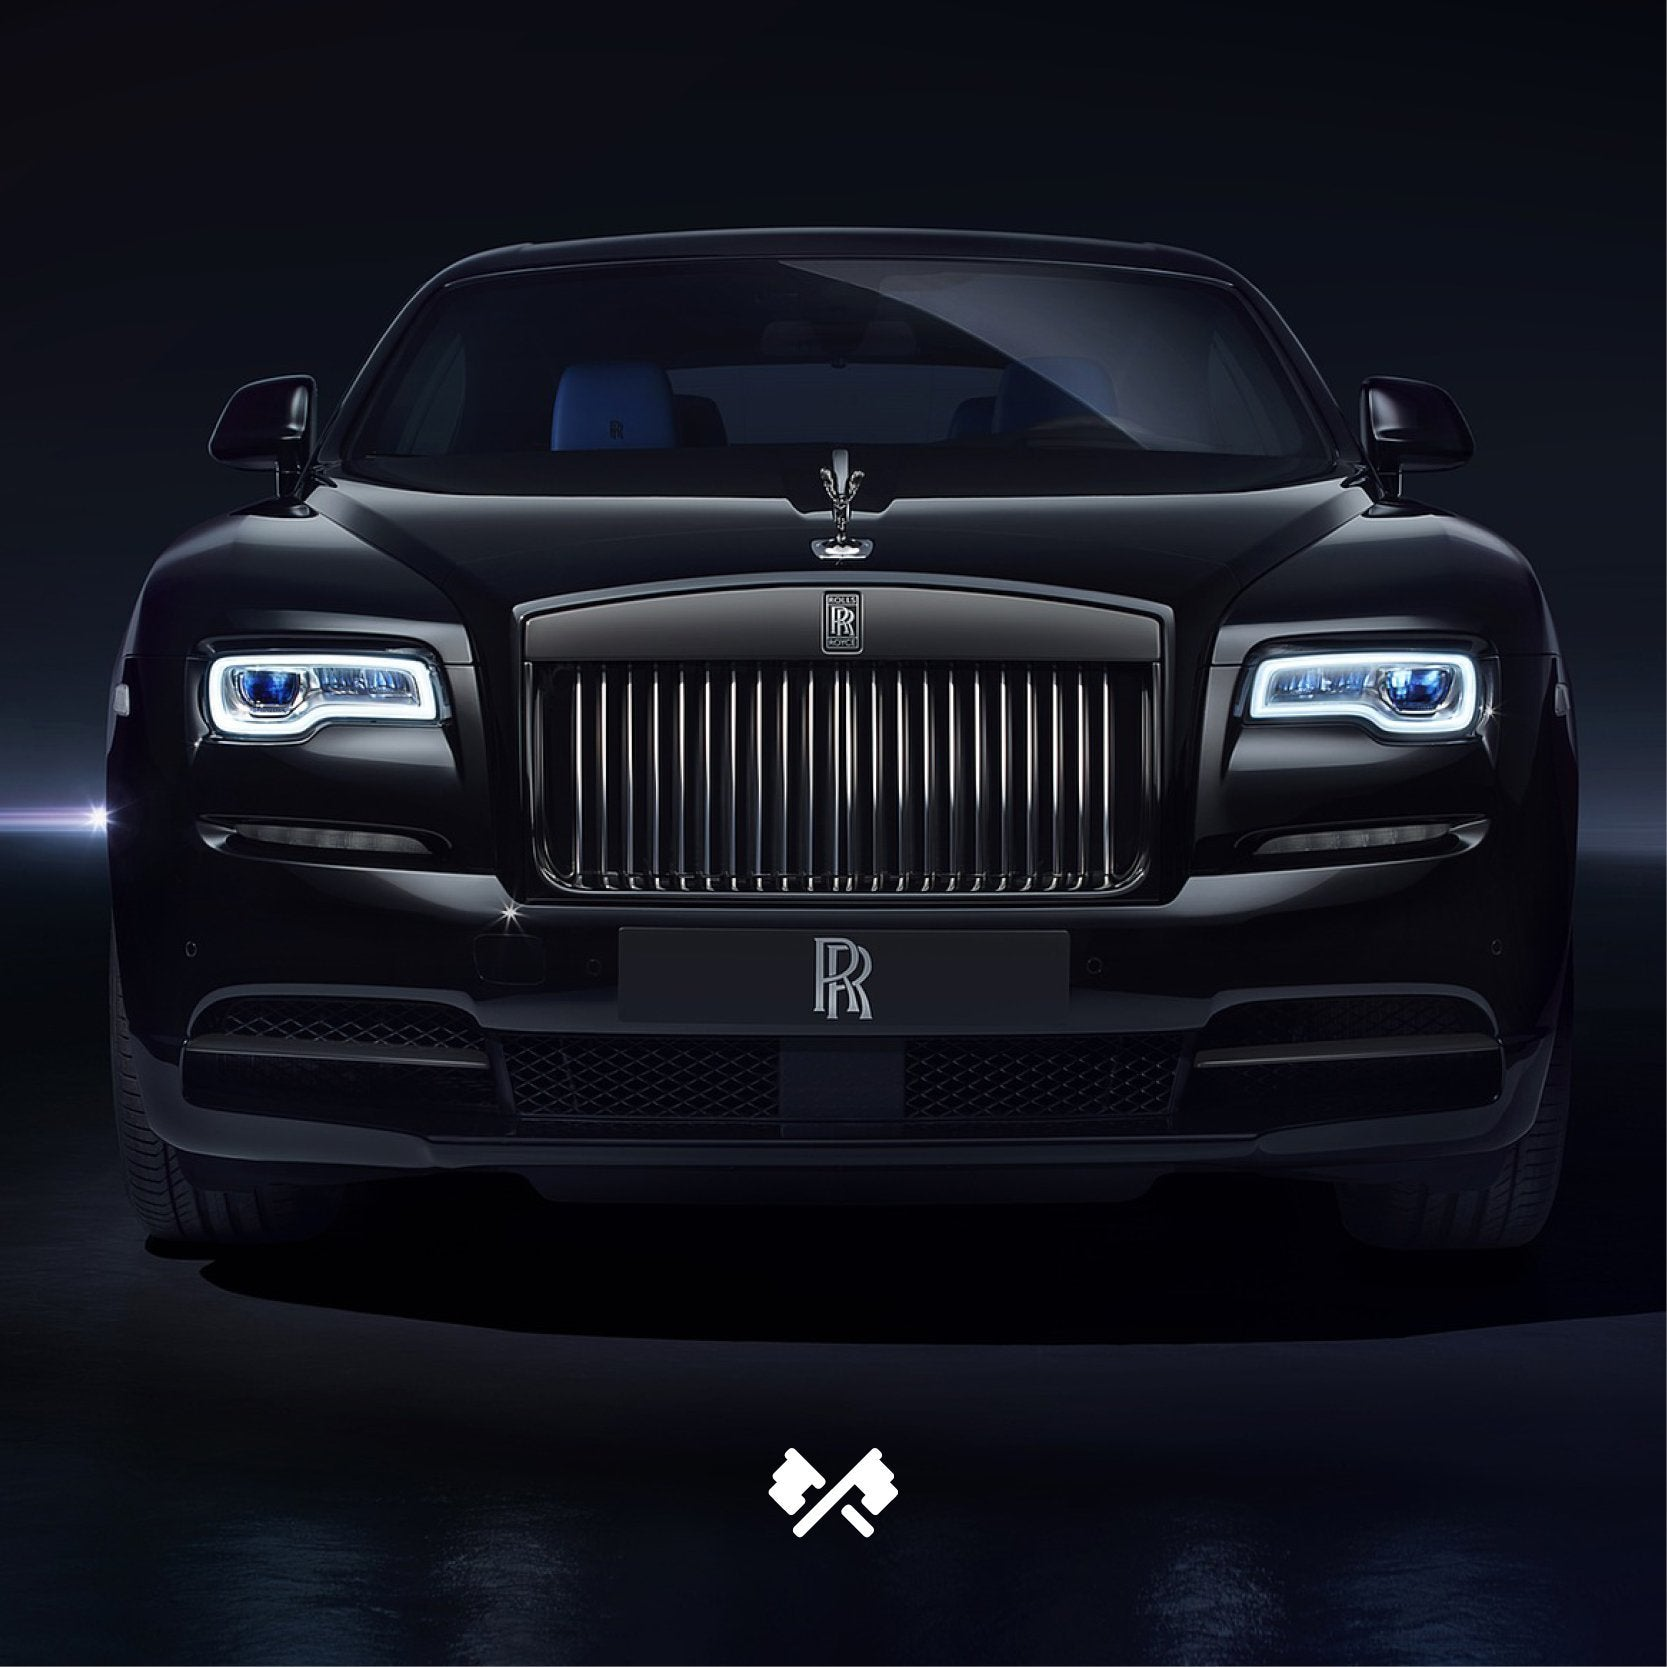 Rolls Royce Phantom Drophead Coupe Rolls Royce